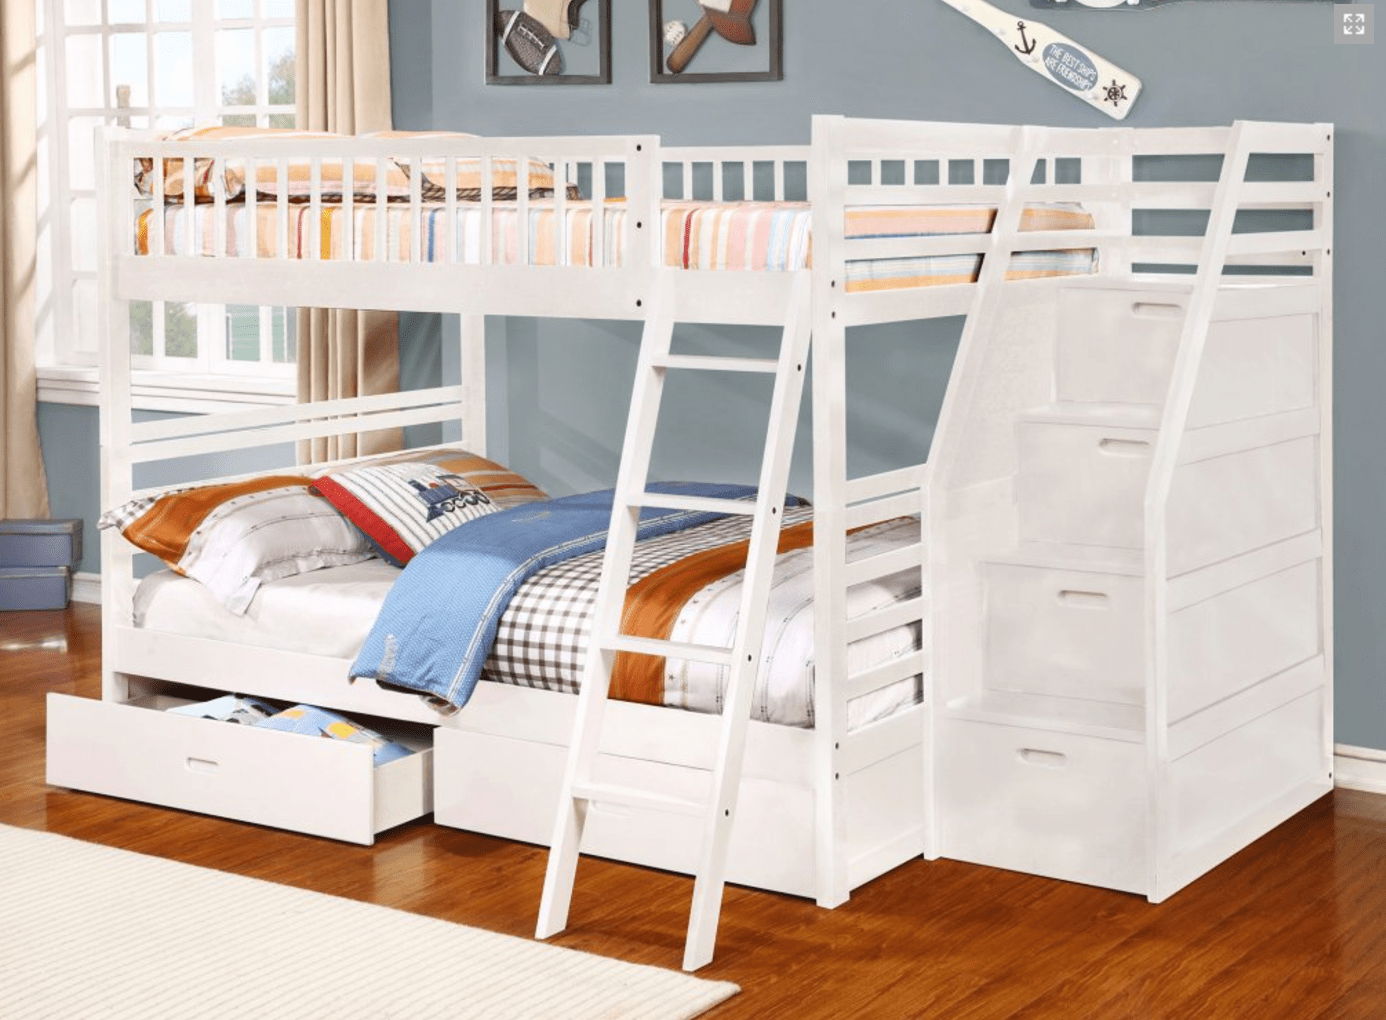 Wholesale Furniture Brokers Canada Deal: Save $50 Off Bunk Beds Using Promo Code